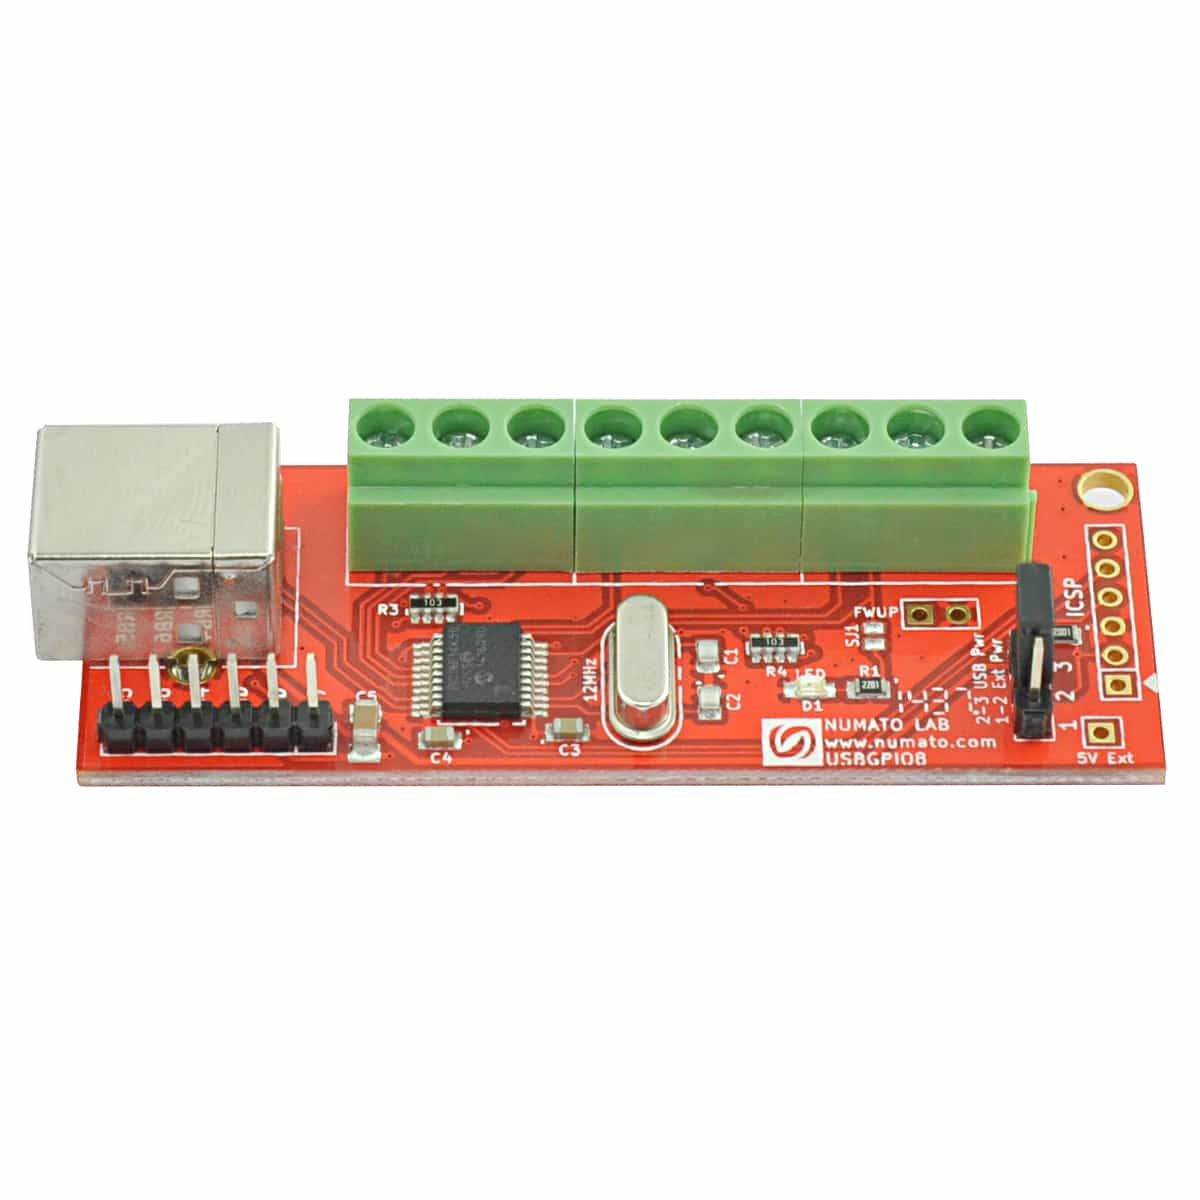 8 Channel USB GPIO Module With Analog Inputs | Numato Lab